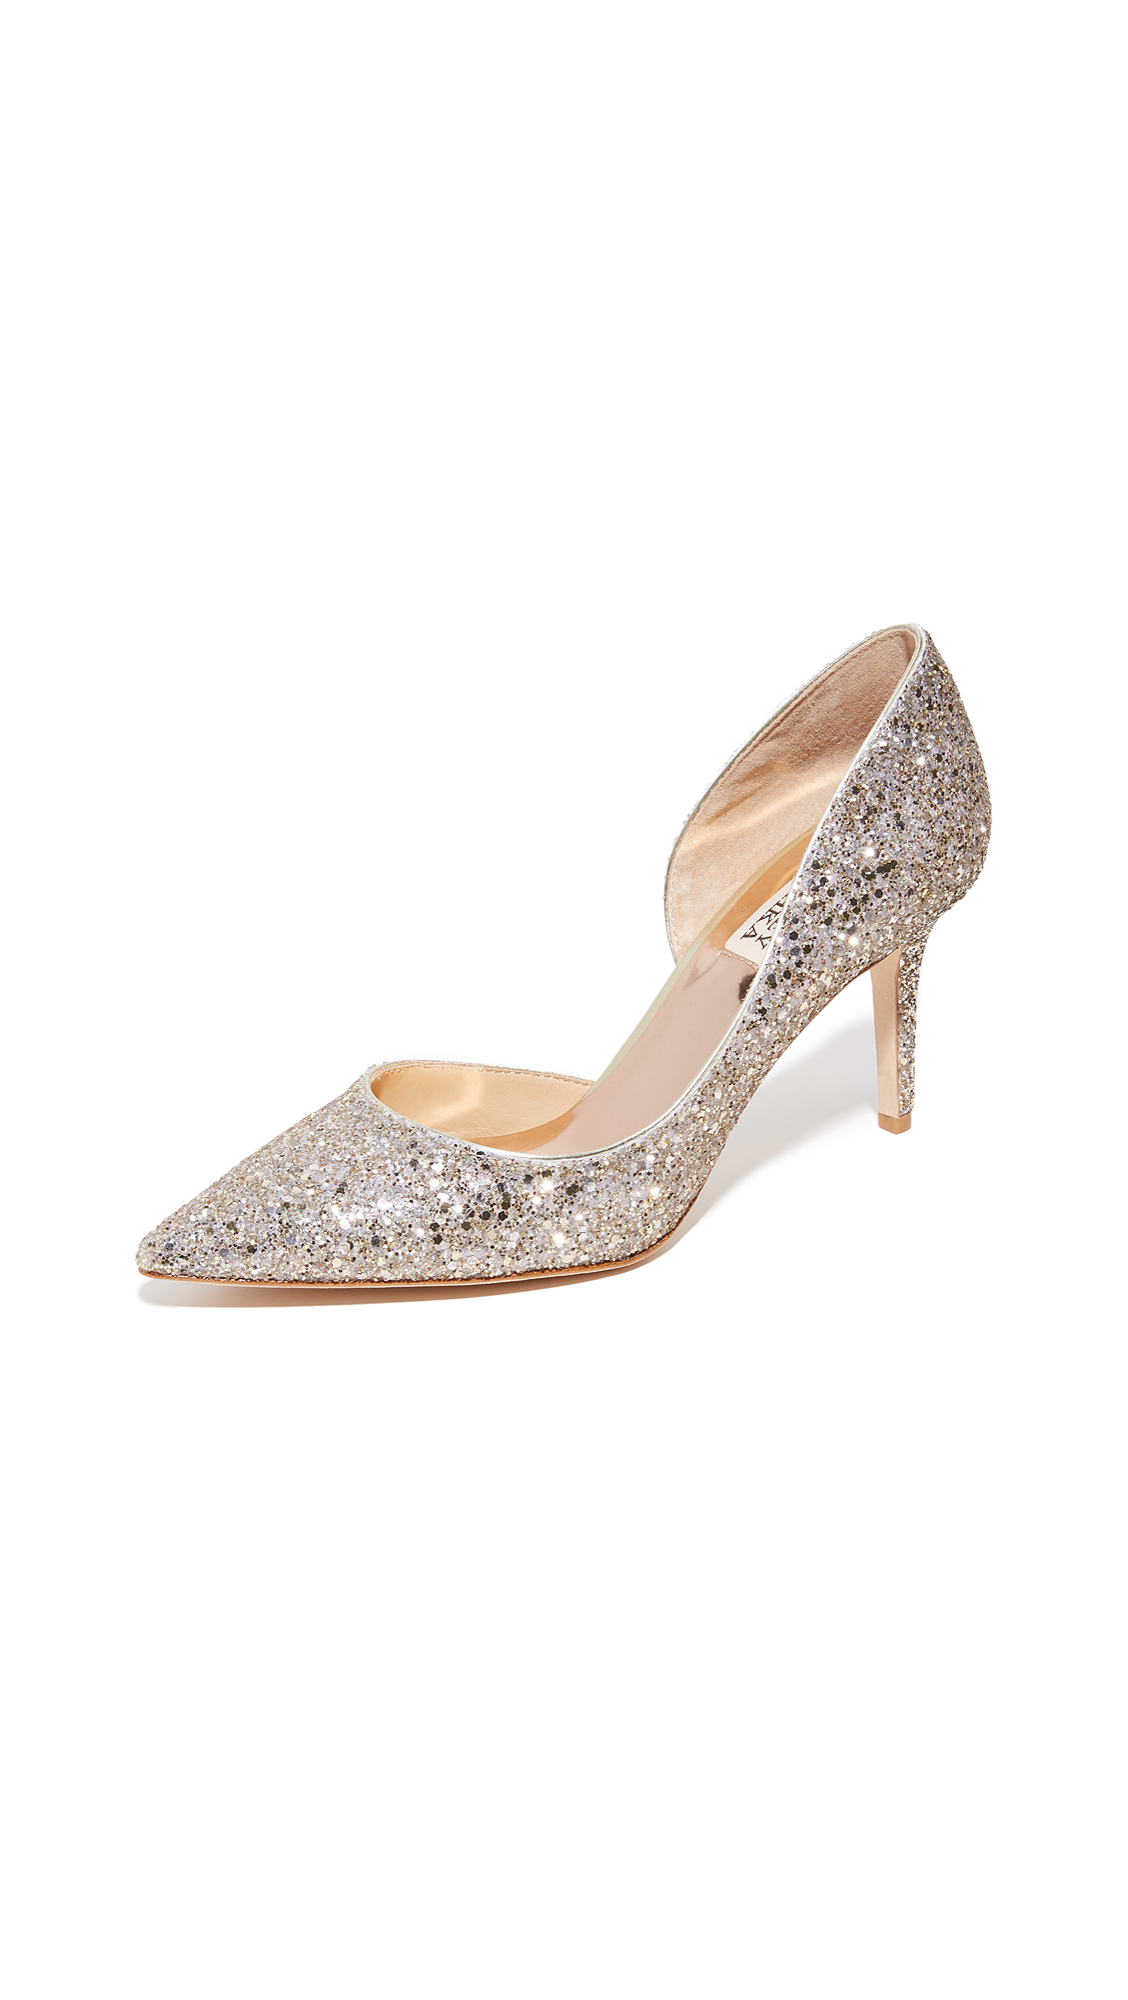 Badgley Mischka Daisy Glitter Pumps - 25% Off Sale